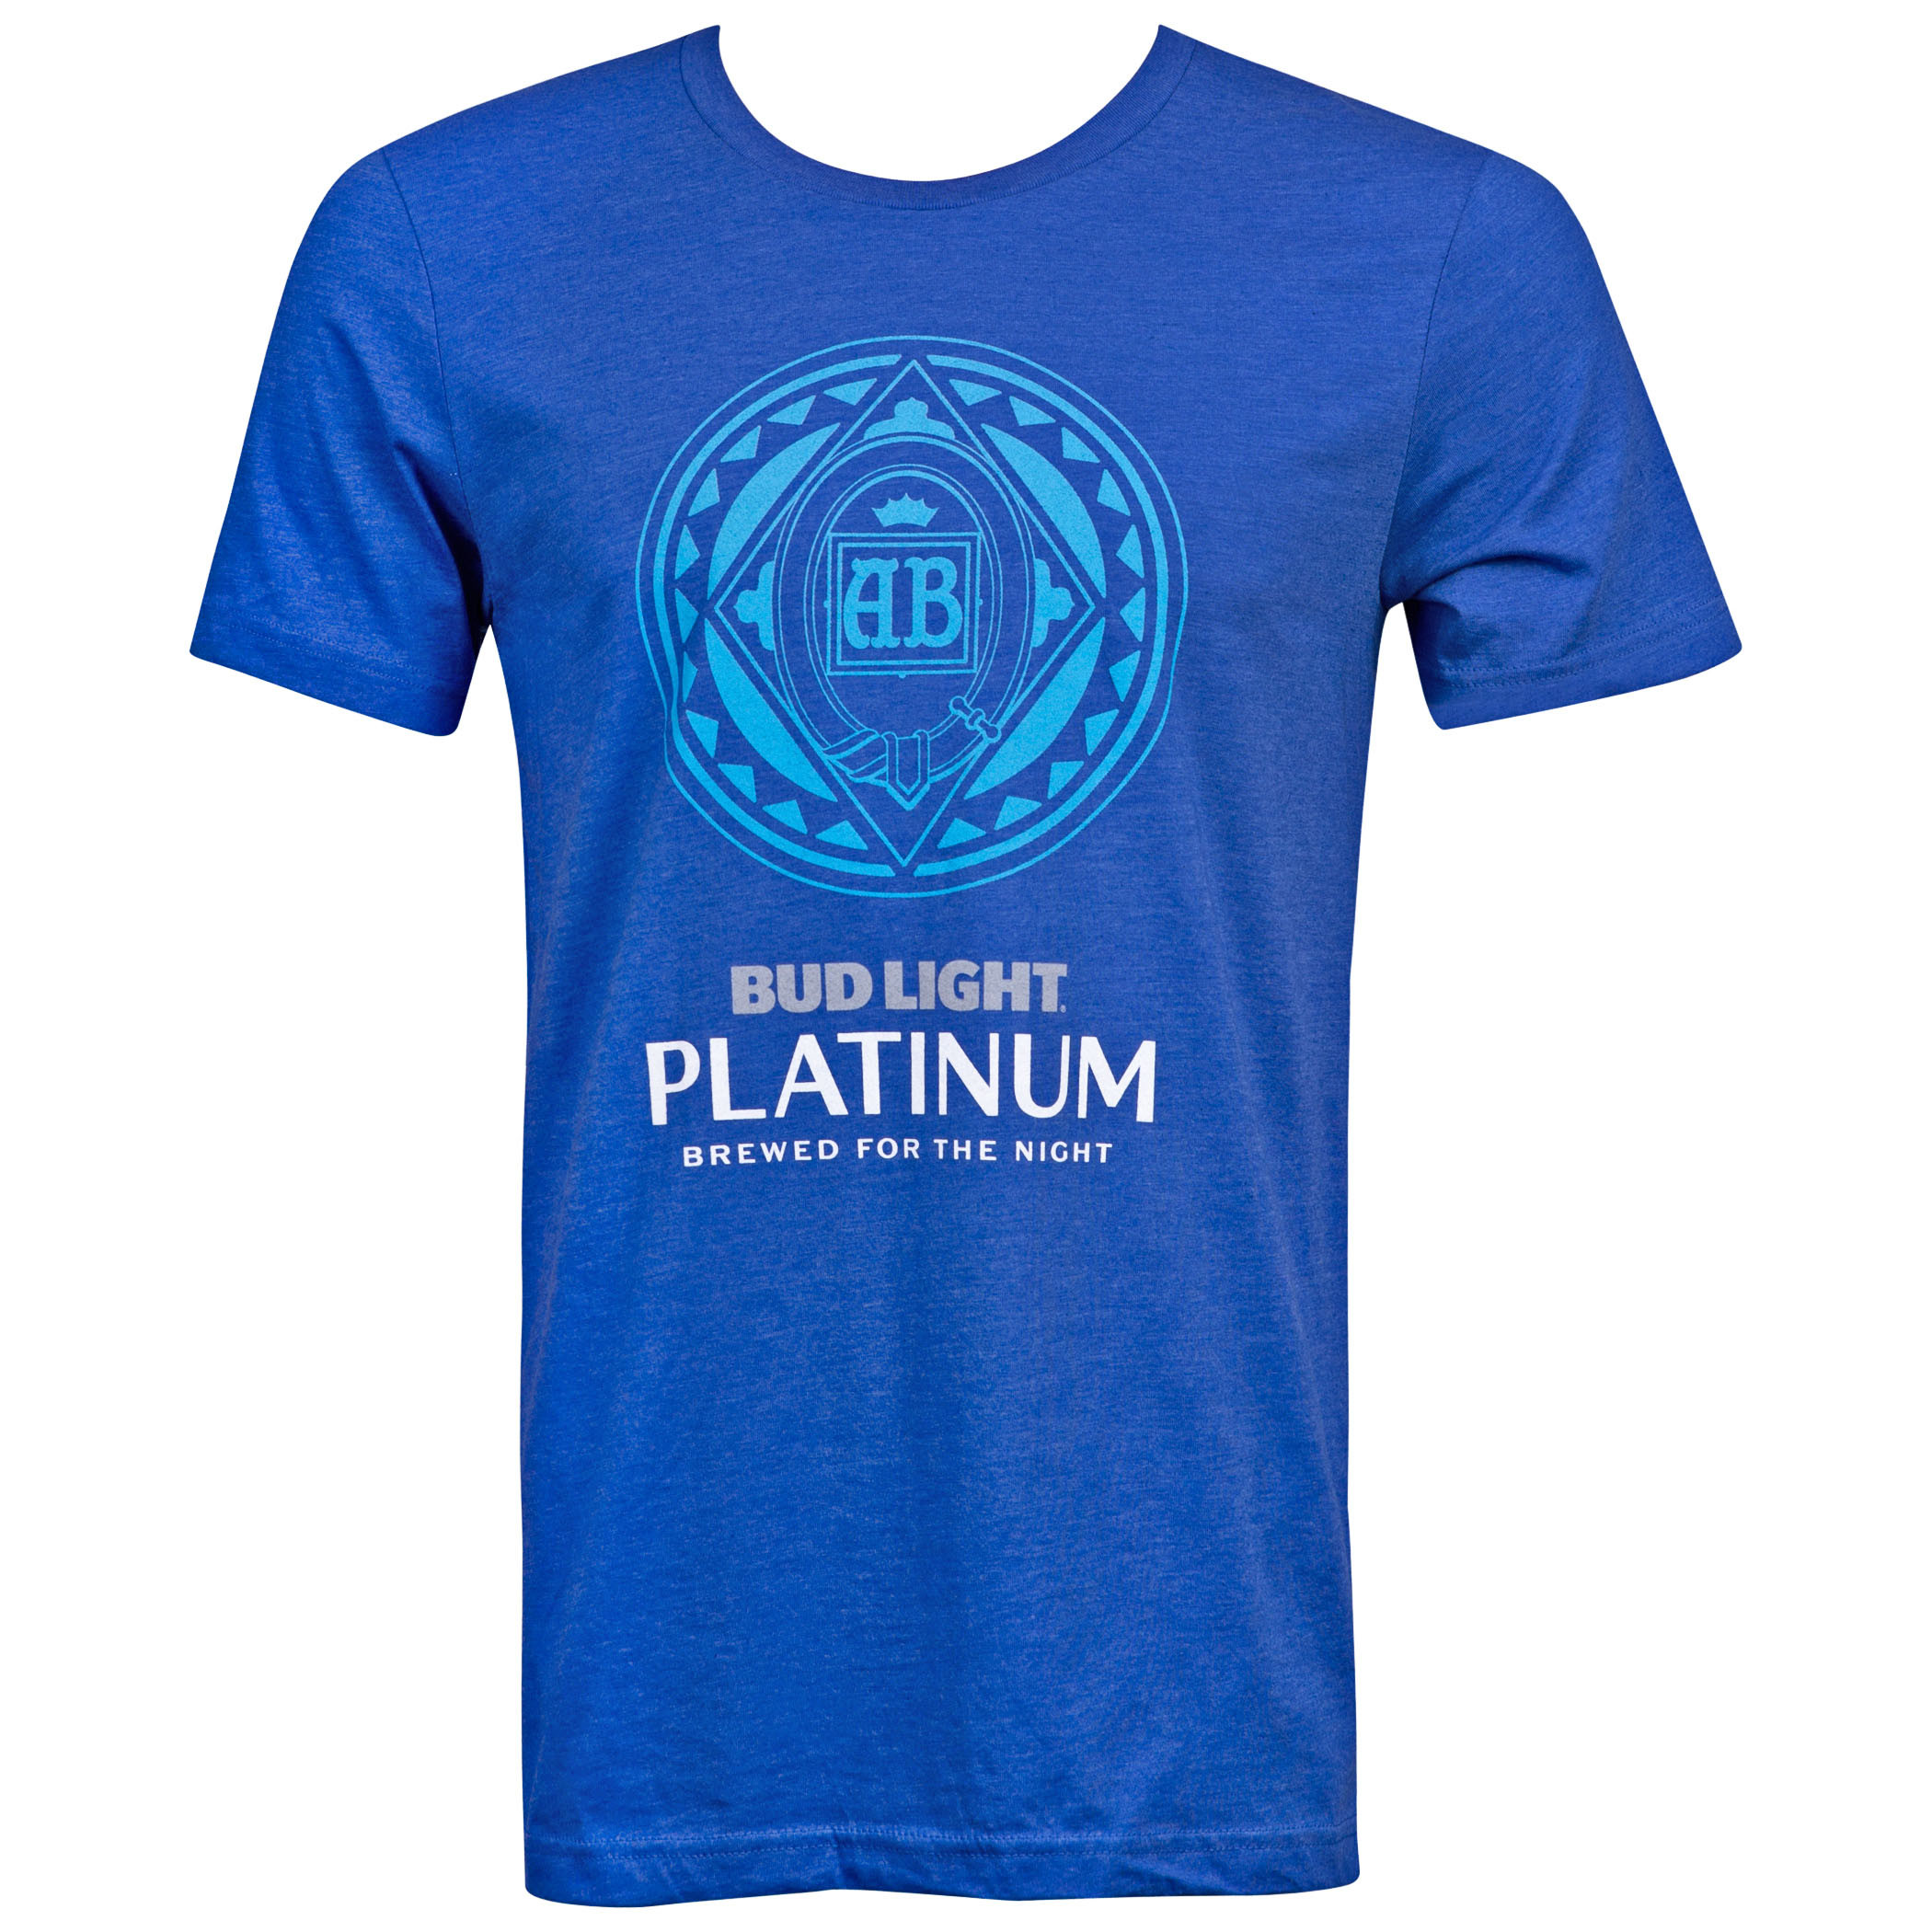 Bud Light Platinum Men's Blue T-Shirt